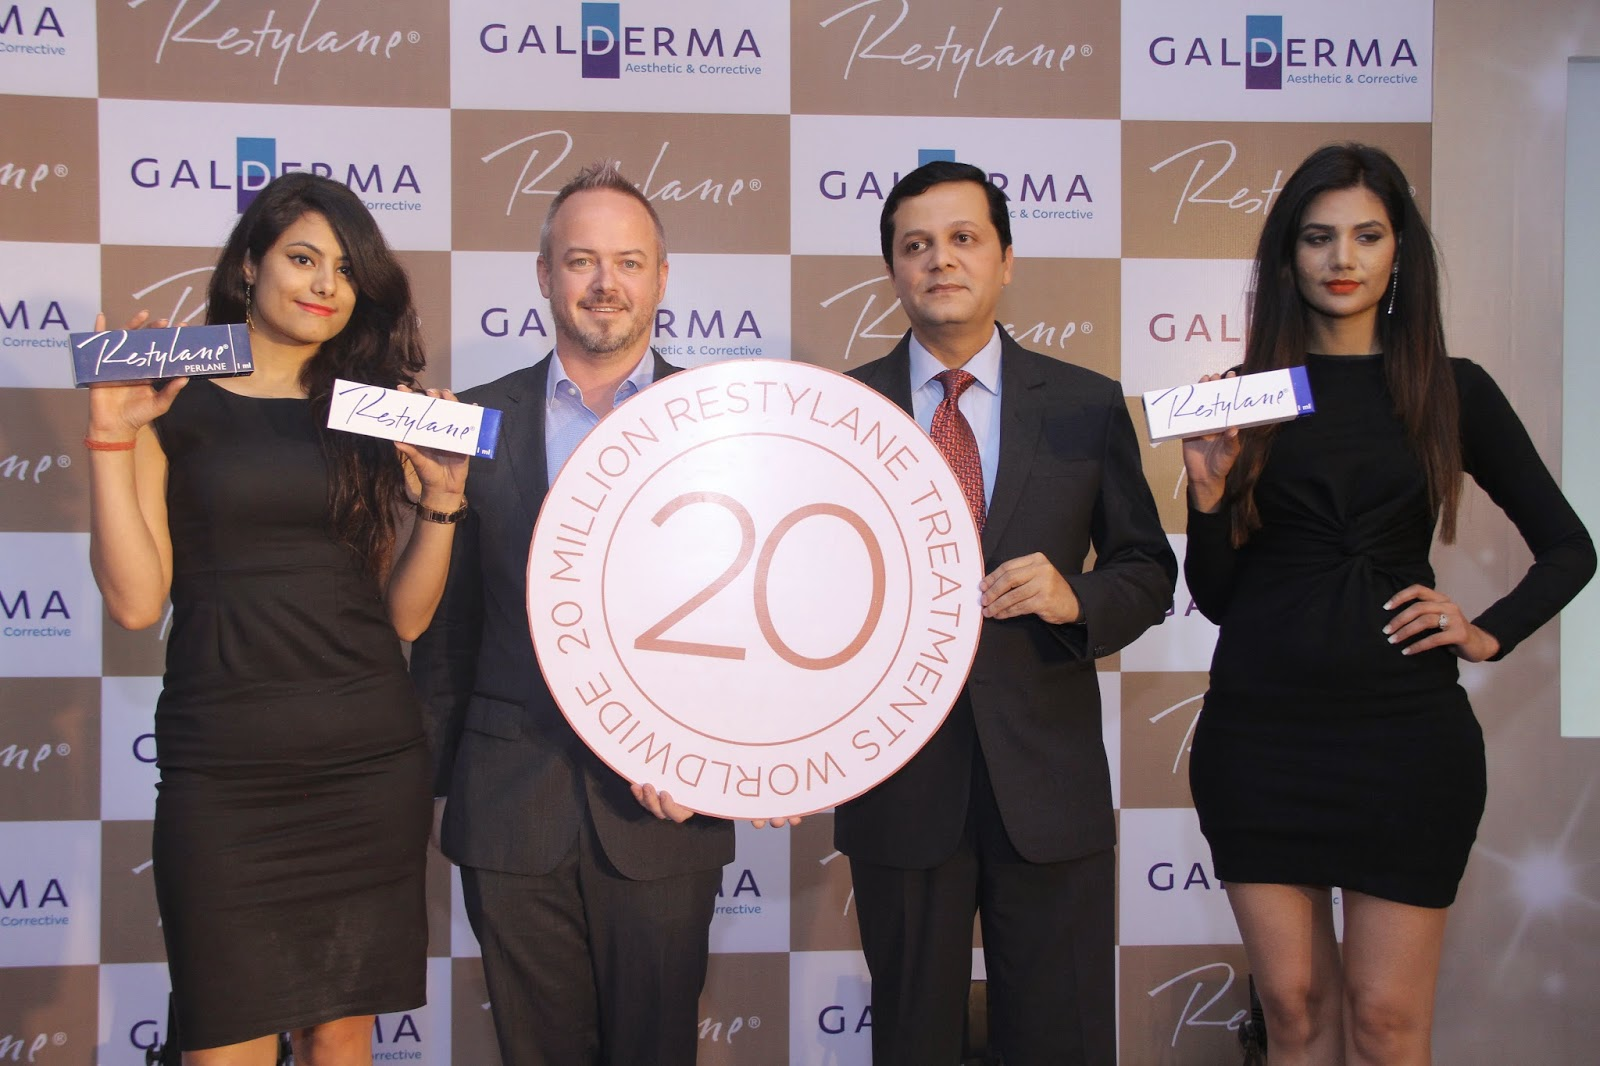 Mr Scott McLennan,Head of Regional centre of Excellence, Asia Pacific, Galderma And Mr H K Madhusudhan, Head of Galderma India's Aesthetic & Corrective business during the  launch of Galderma Aesthetic Academy in New Delhi on wednesday.